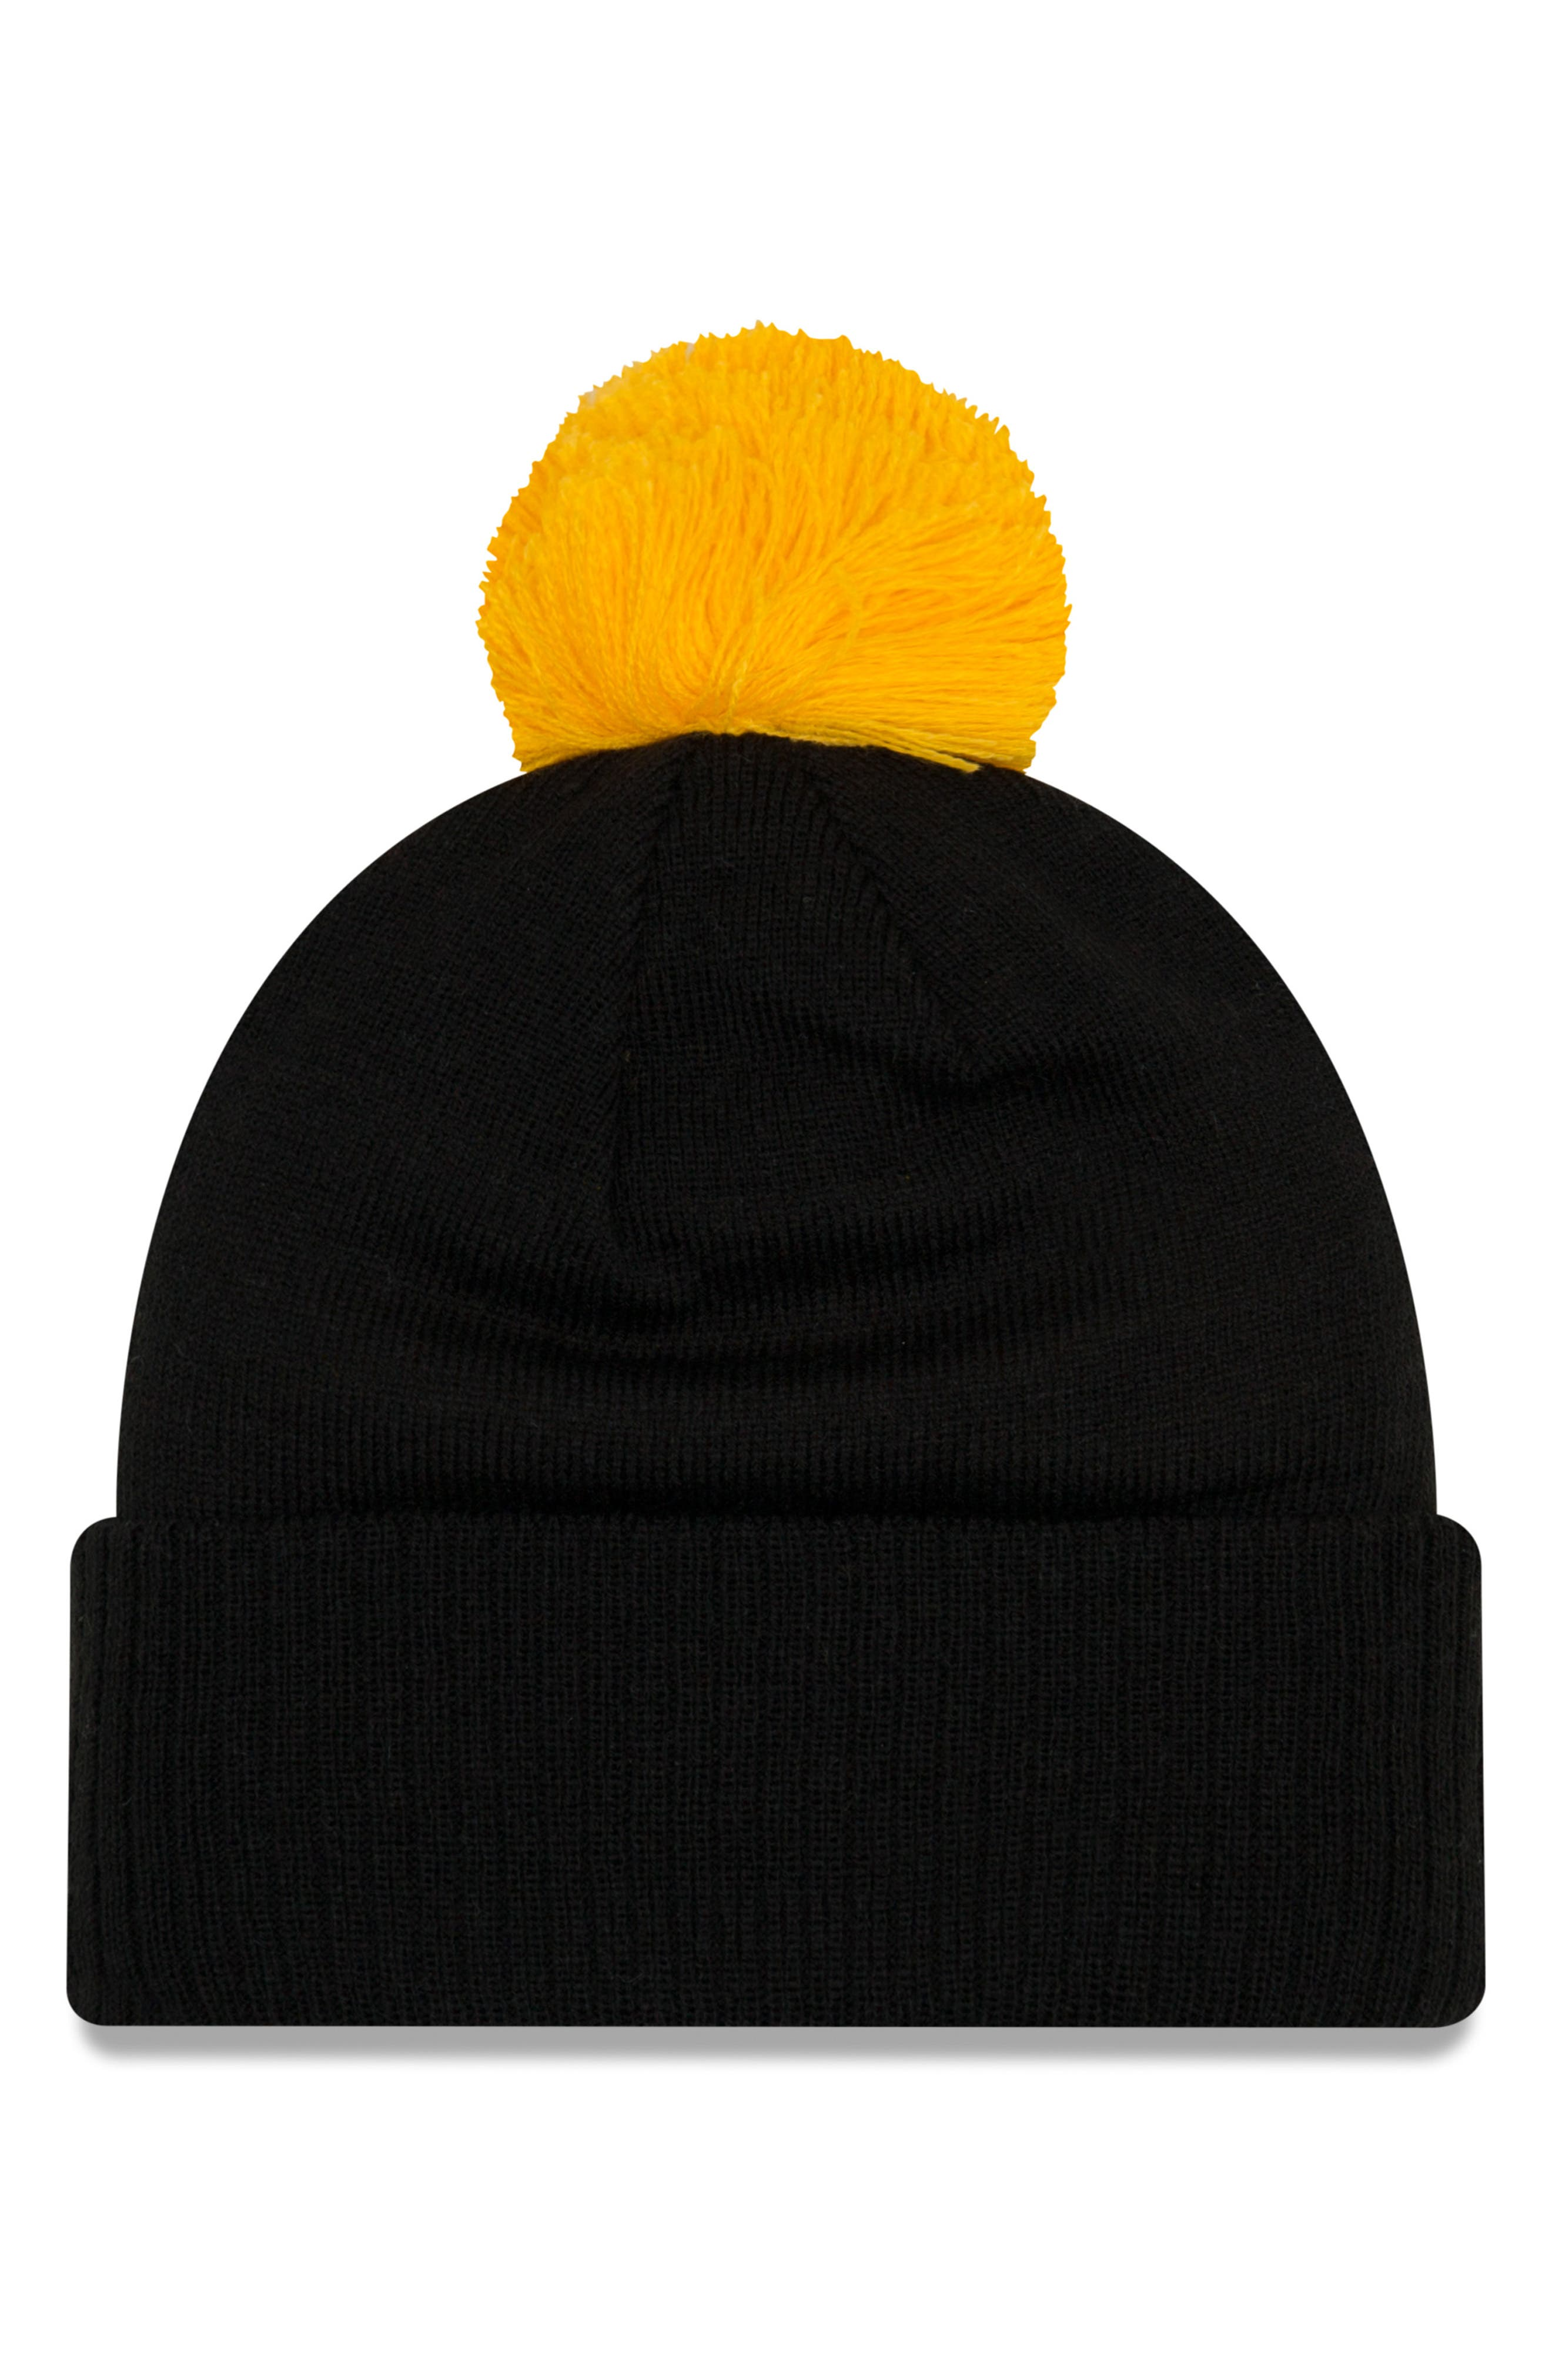 NFL Pom Beanie,                             Alternate thumbnail 2, color,                             PITTSBURGH STEELERS